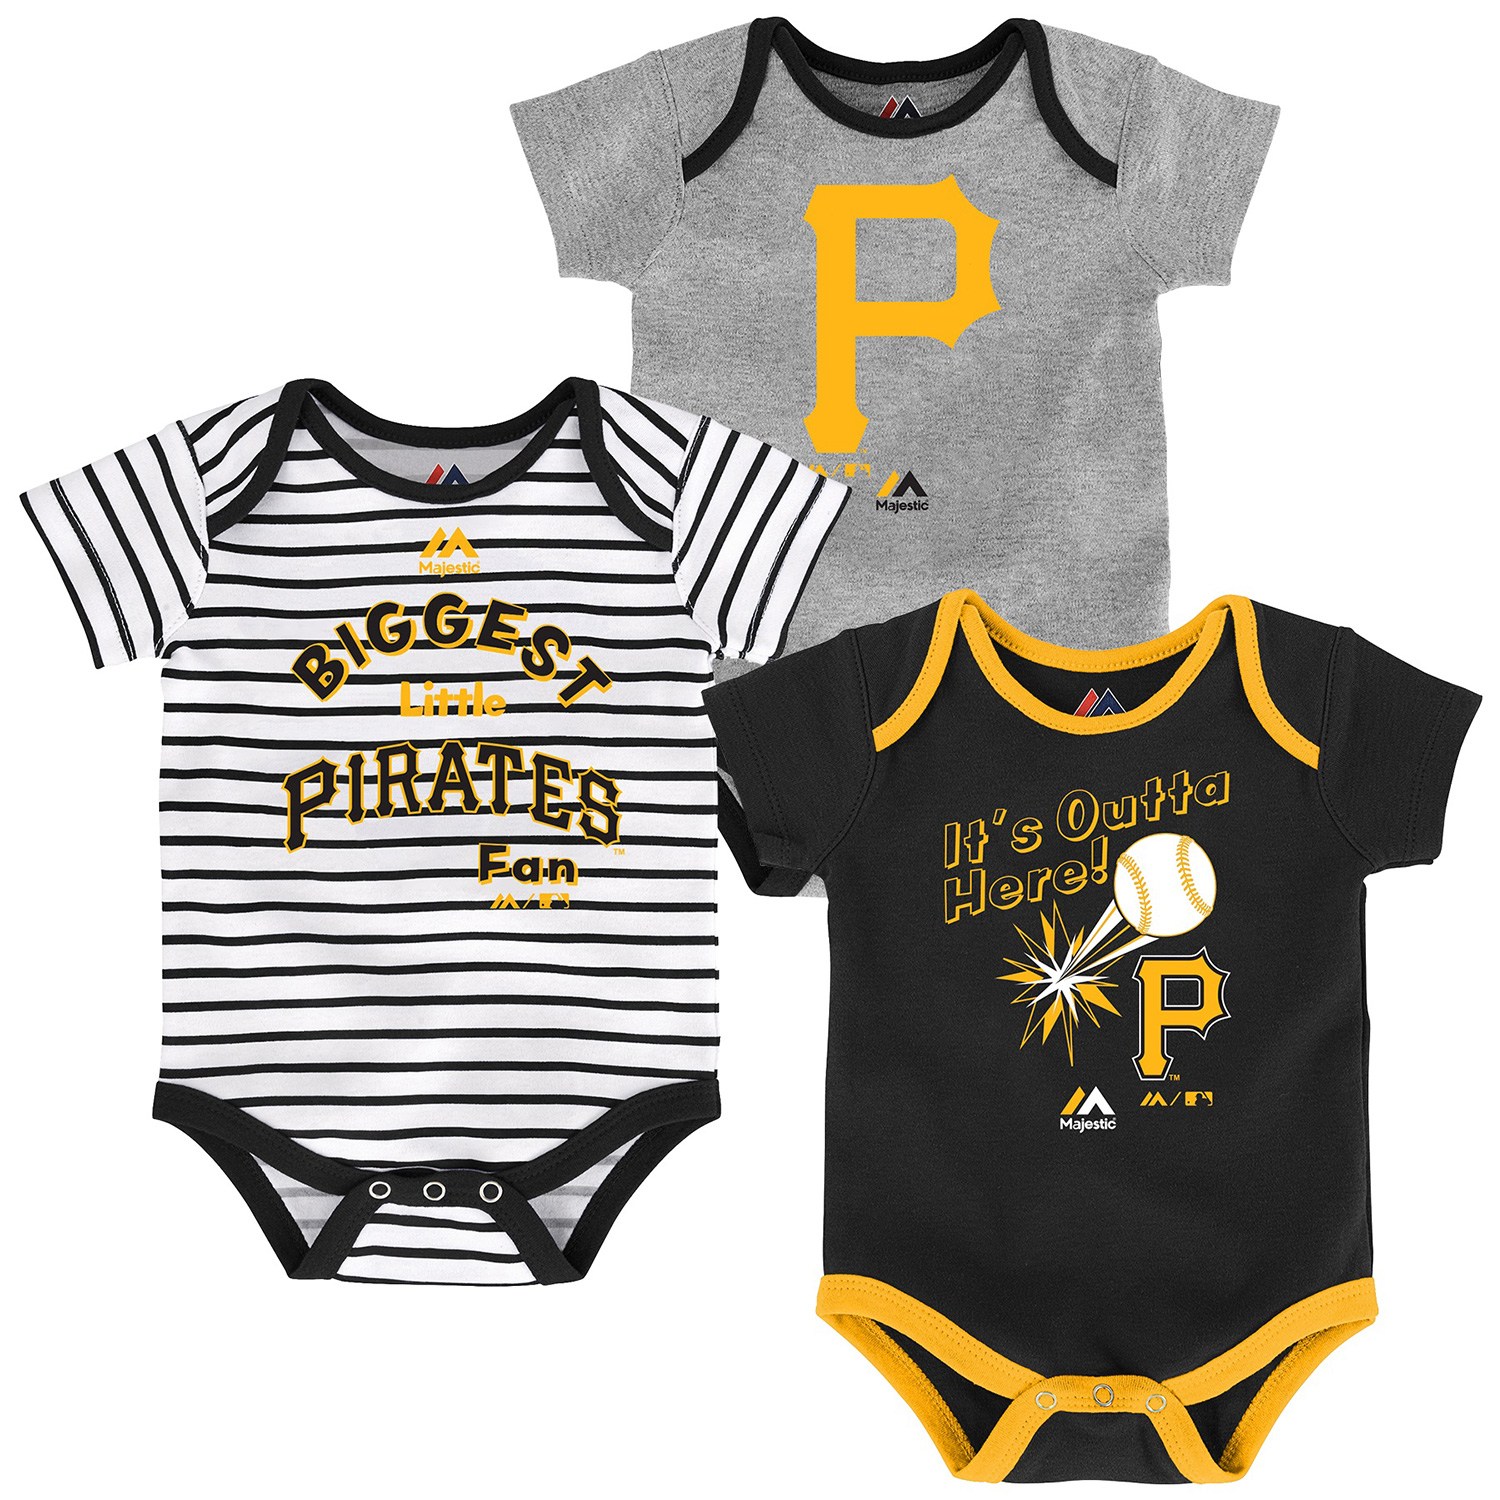 Pittsburgh Pirates Majestic Newborn & Infant Home Run 3-Pack Bodysuit Set - Black/Gray/White